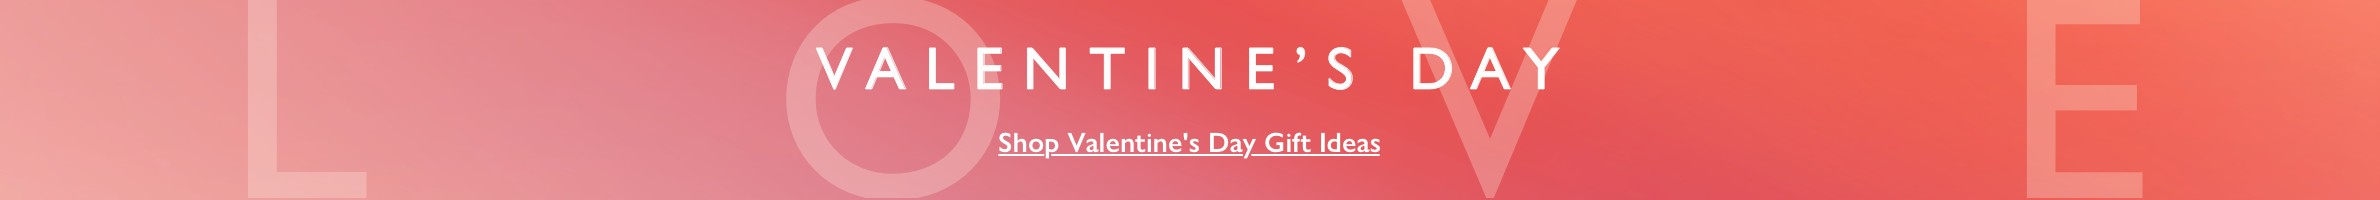 Valentines Day - Friday 14 February